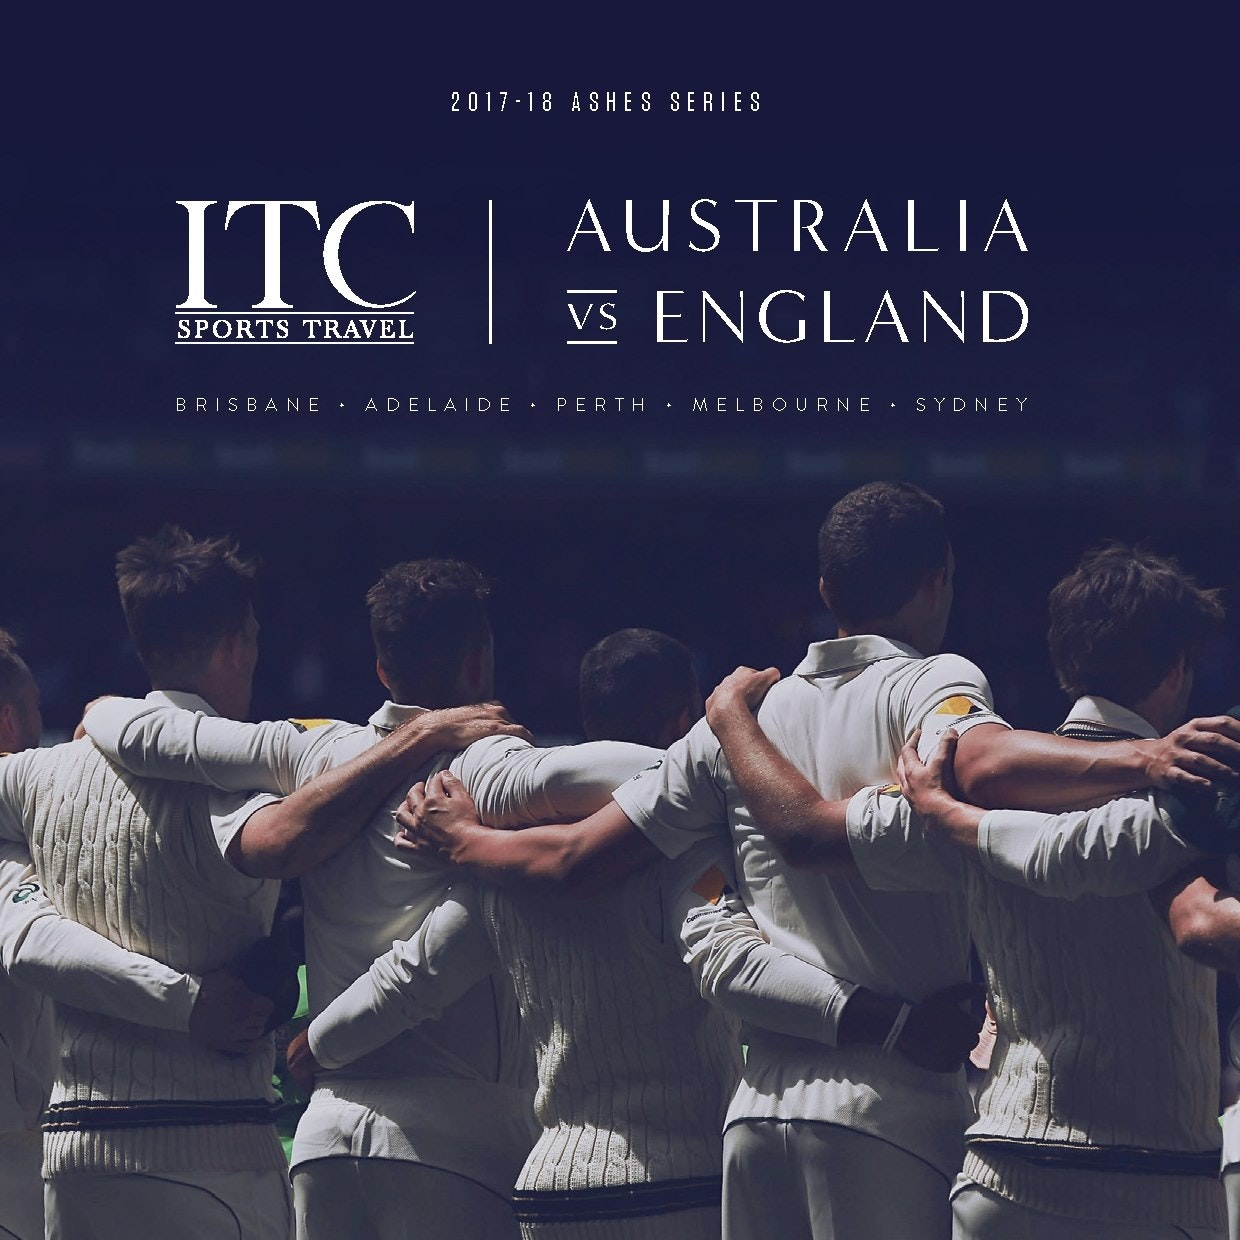 2017-18 Ashes Series